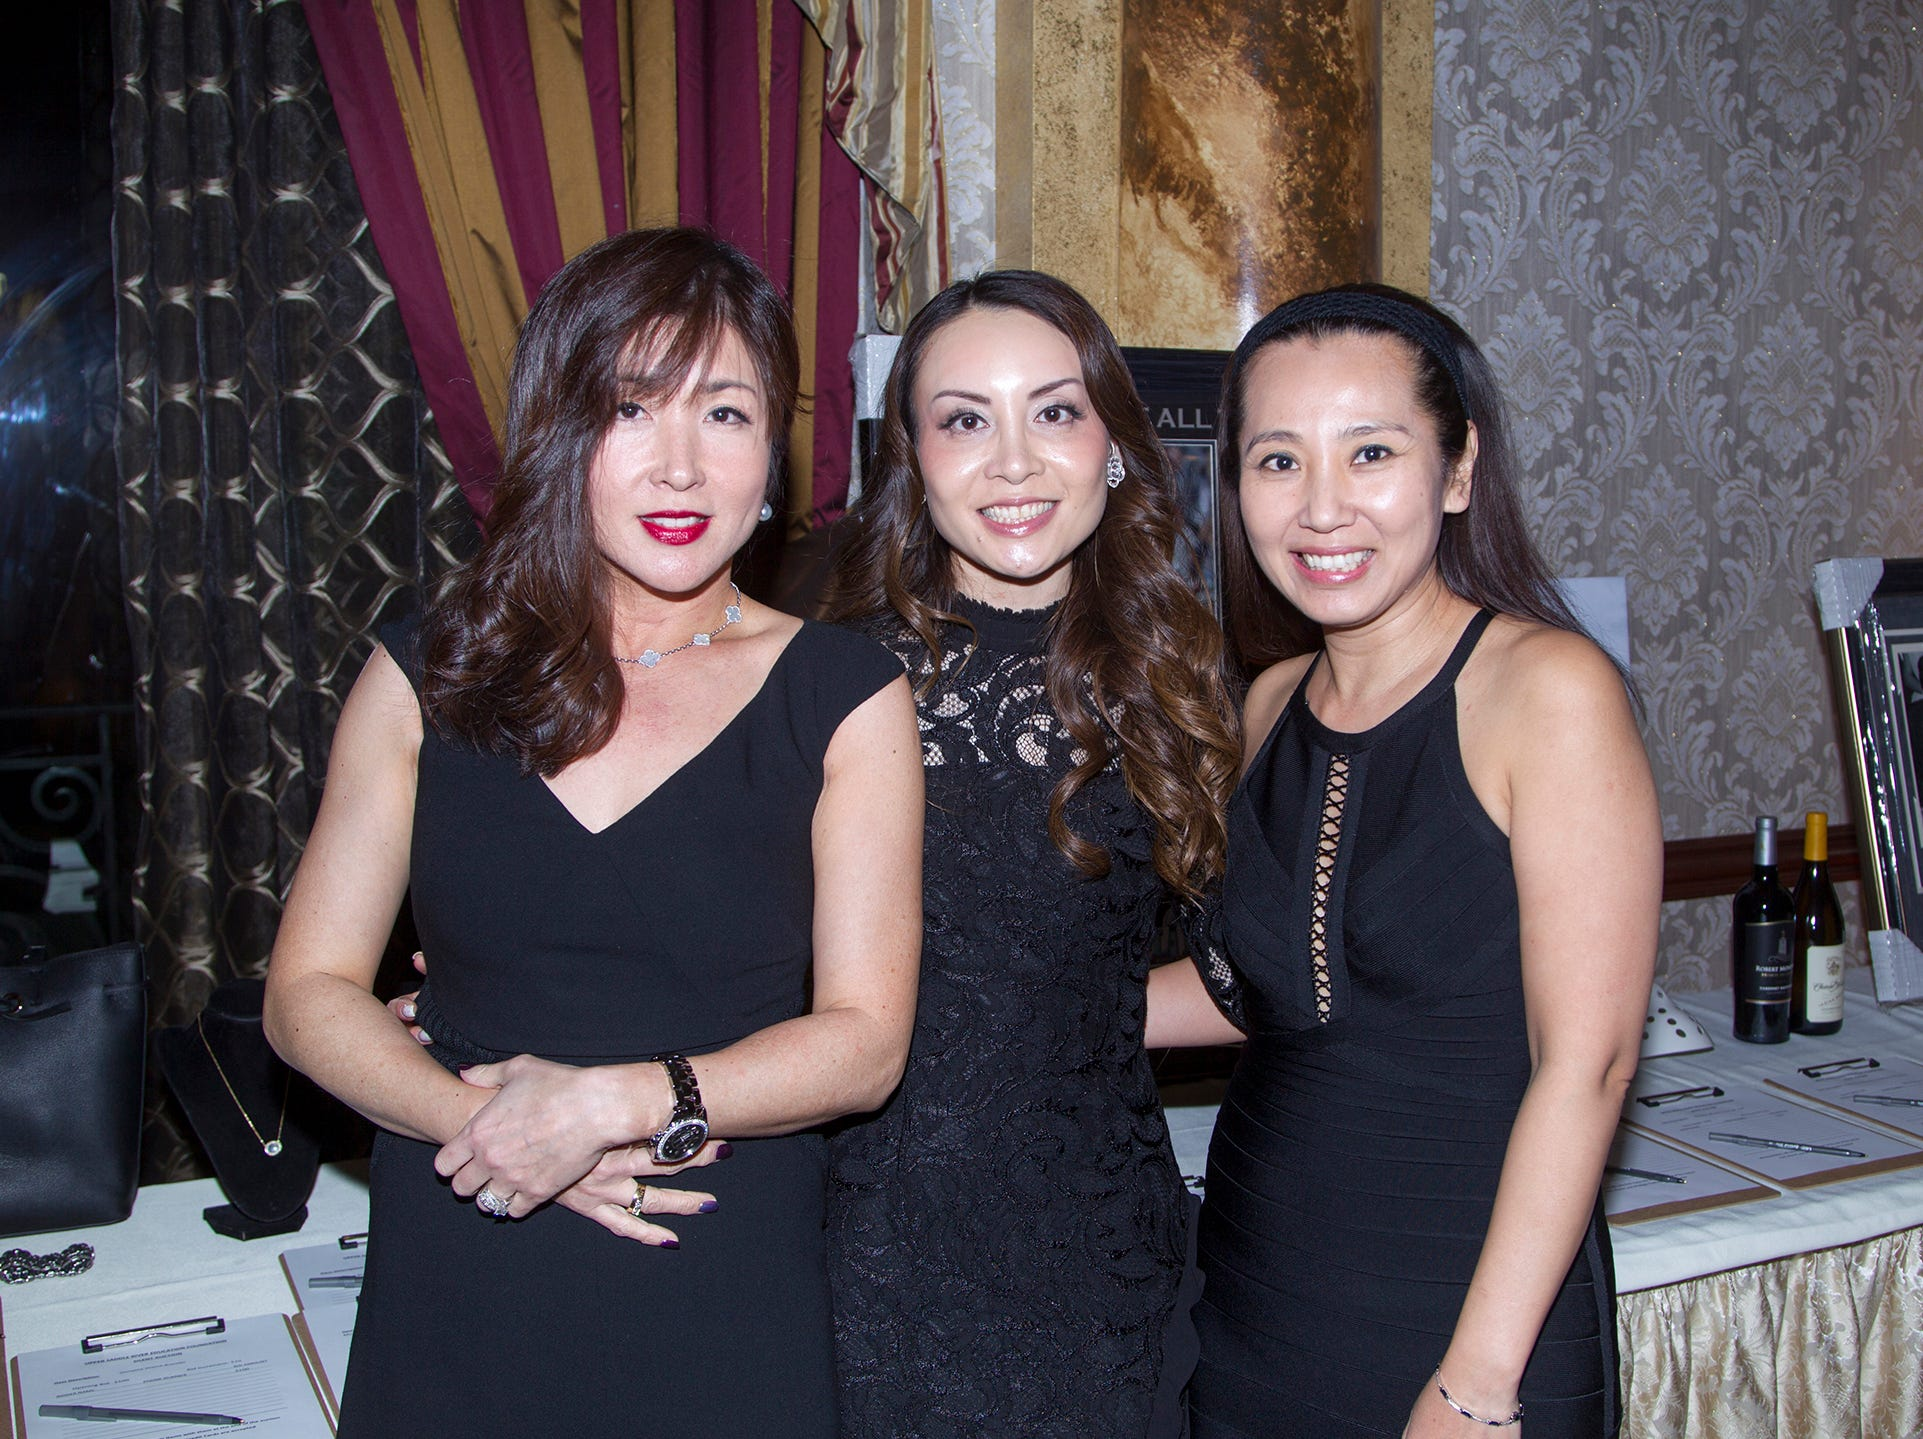 Syaci Choi, Anna Lin, Nina Pollak. Upper Saddle River Education Foundation hosted its Town Night Out Gala at Seasons in Washington Twp. 04/06/2019